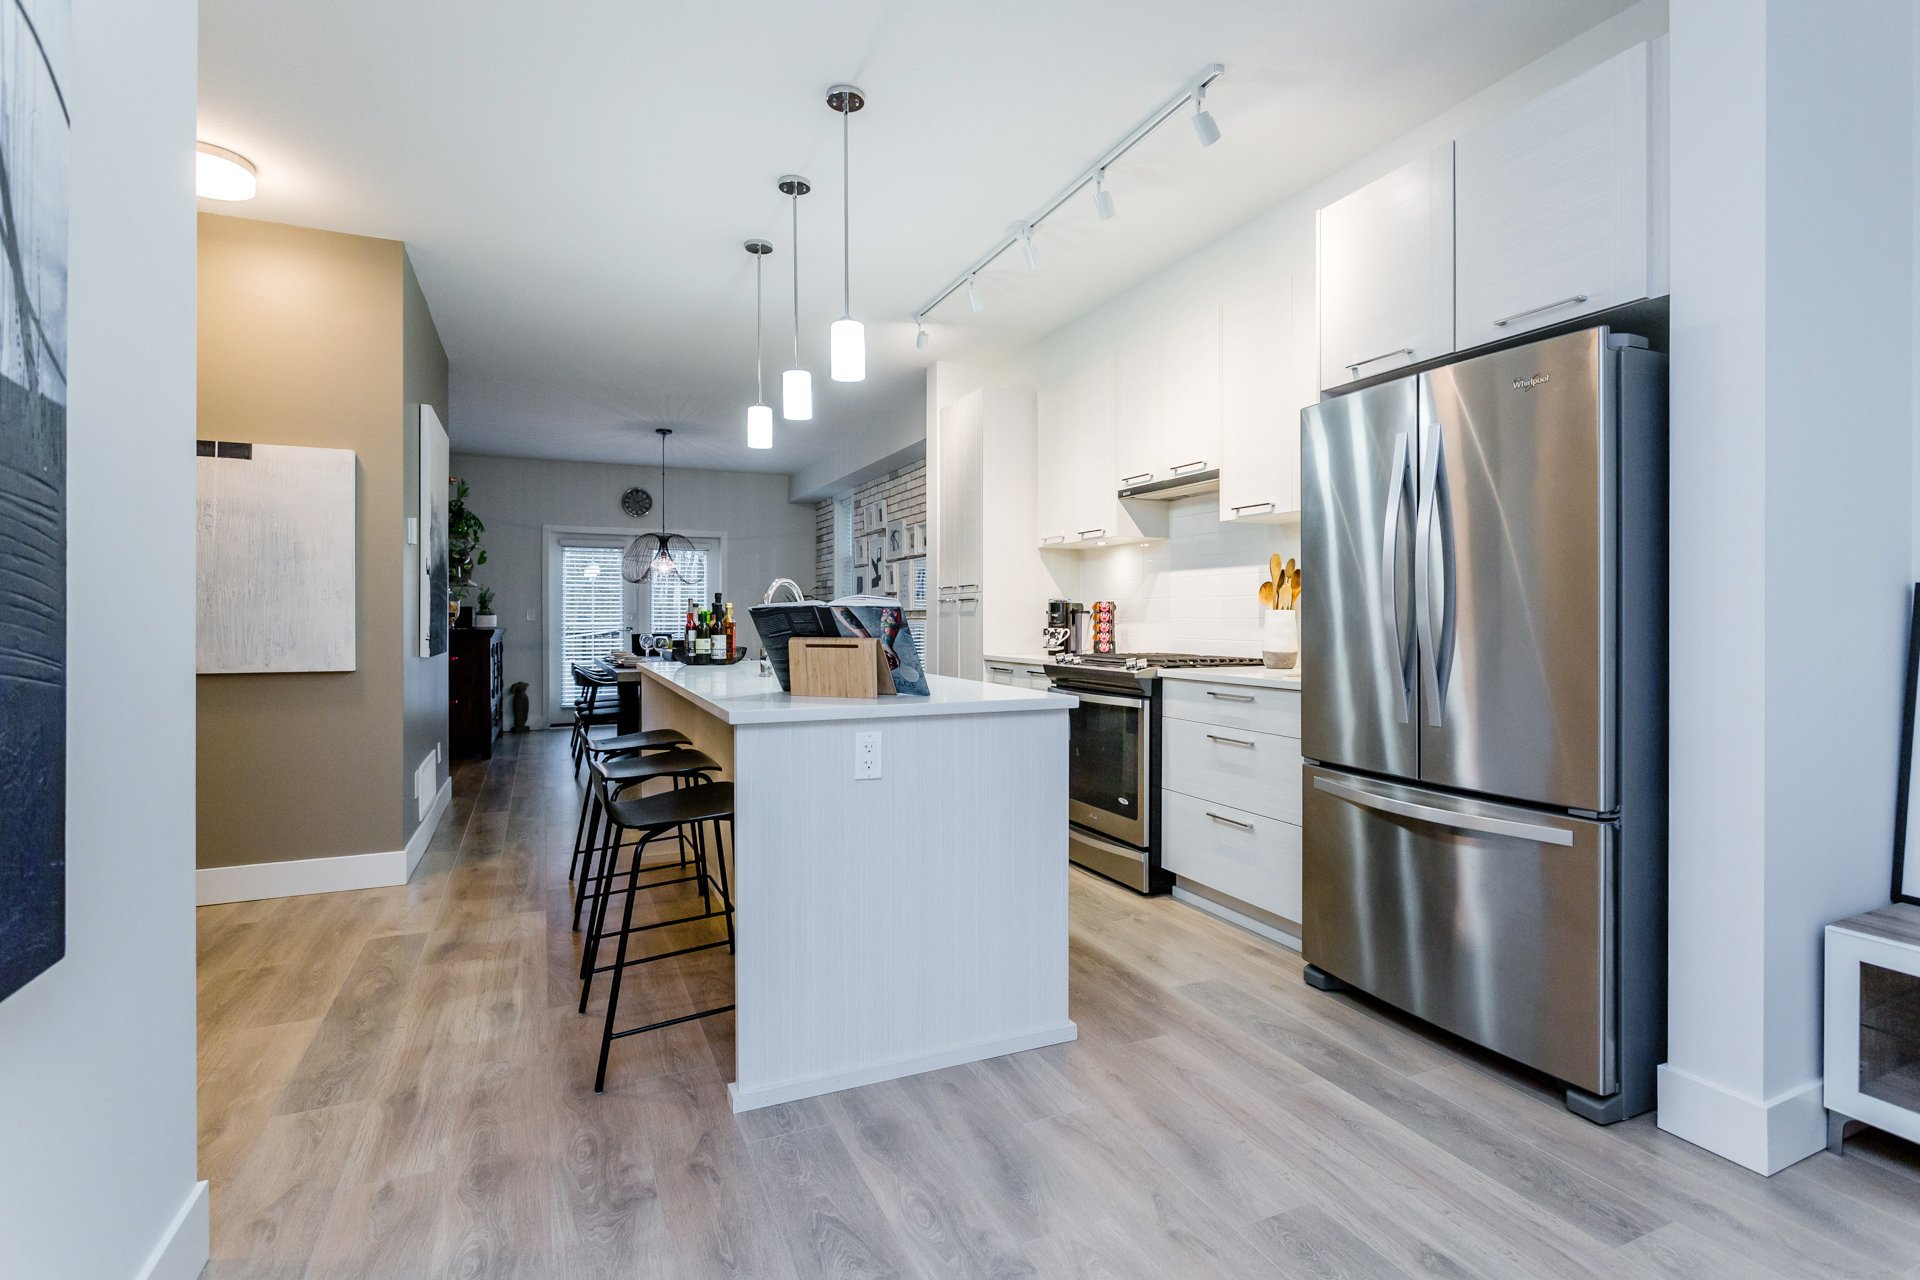 """Photo 11: Photos: 8 8217 204B Street in Langley: Willoughby Heights Townhouse for sale in """"EVERLY GREEN"""" : MLS®# R2236678"""